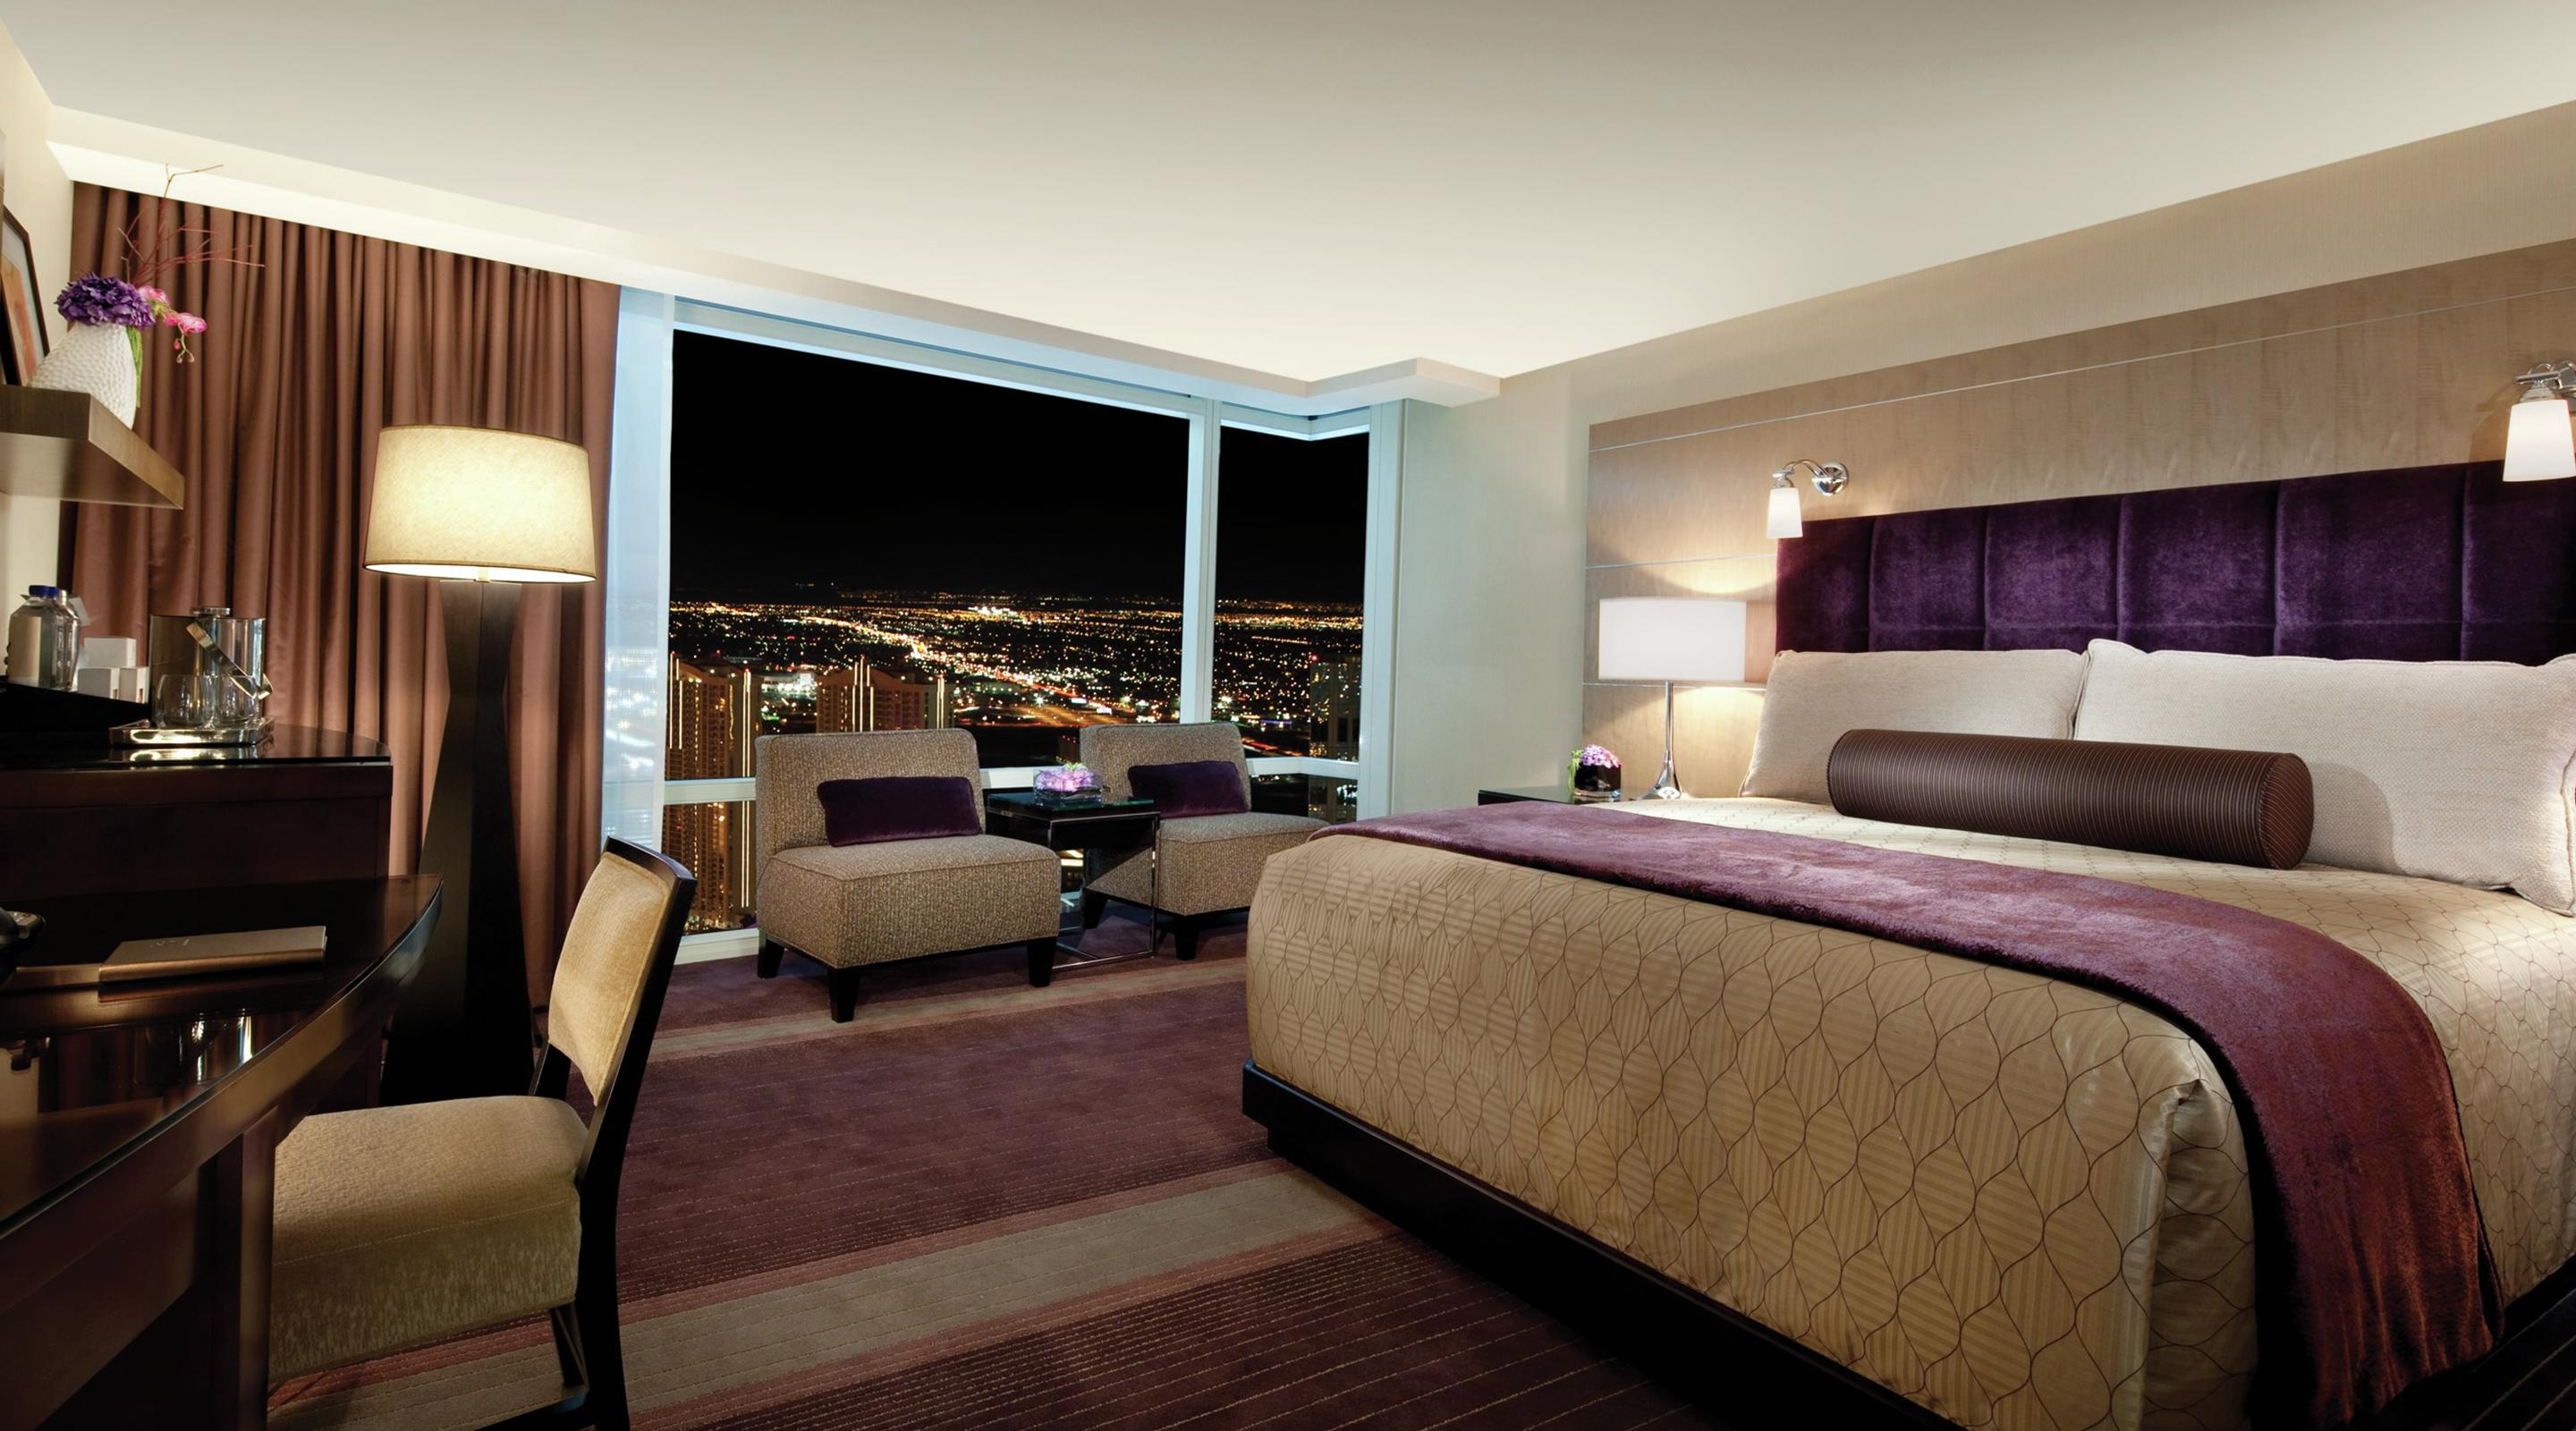 Deluxe Rooms Hotel Rooms in Las Vegas ARIA Resort Casino ARIA Resort  Casino  Deluxe Rooms. Arias Bedroom